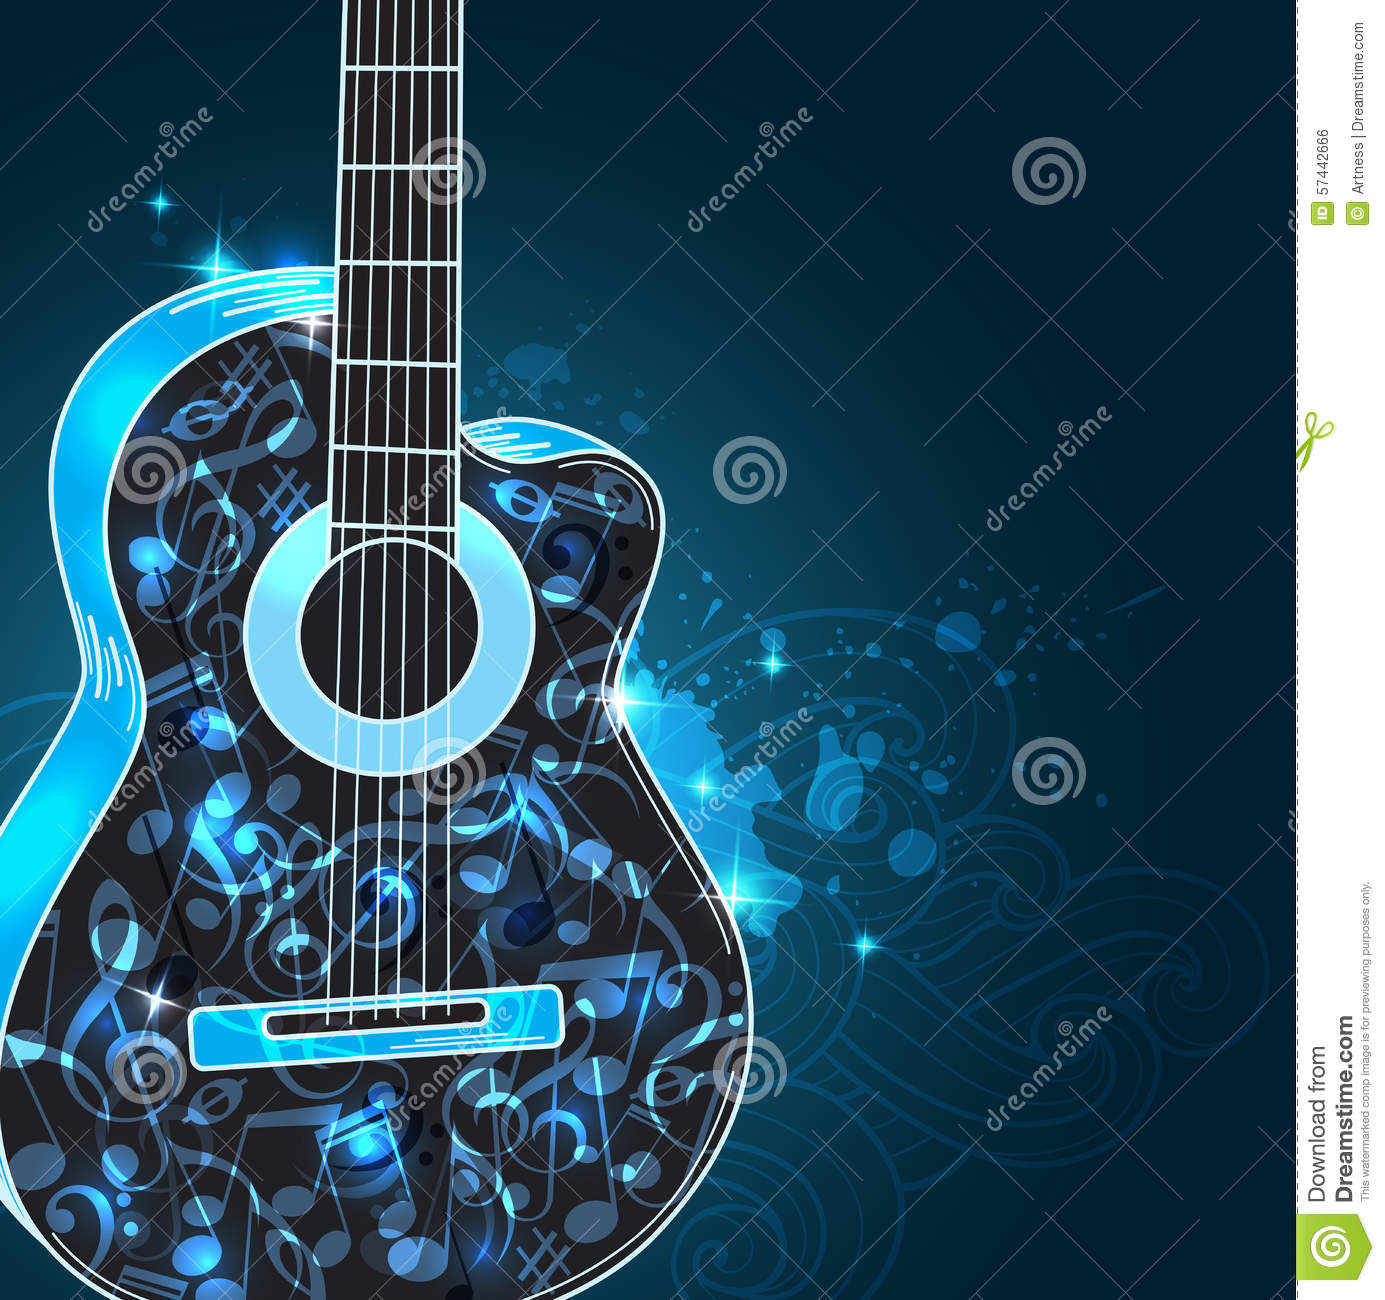 3d Stylish Girl Wallpaper Music Background With Guitar Stock Vector Image 57442666